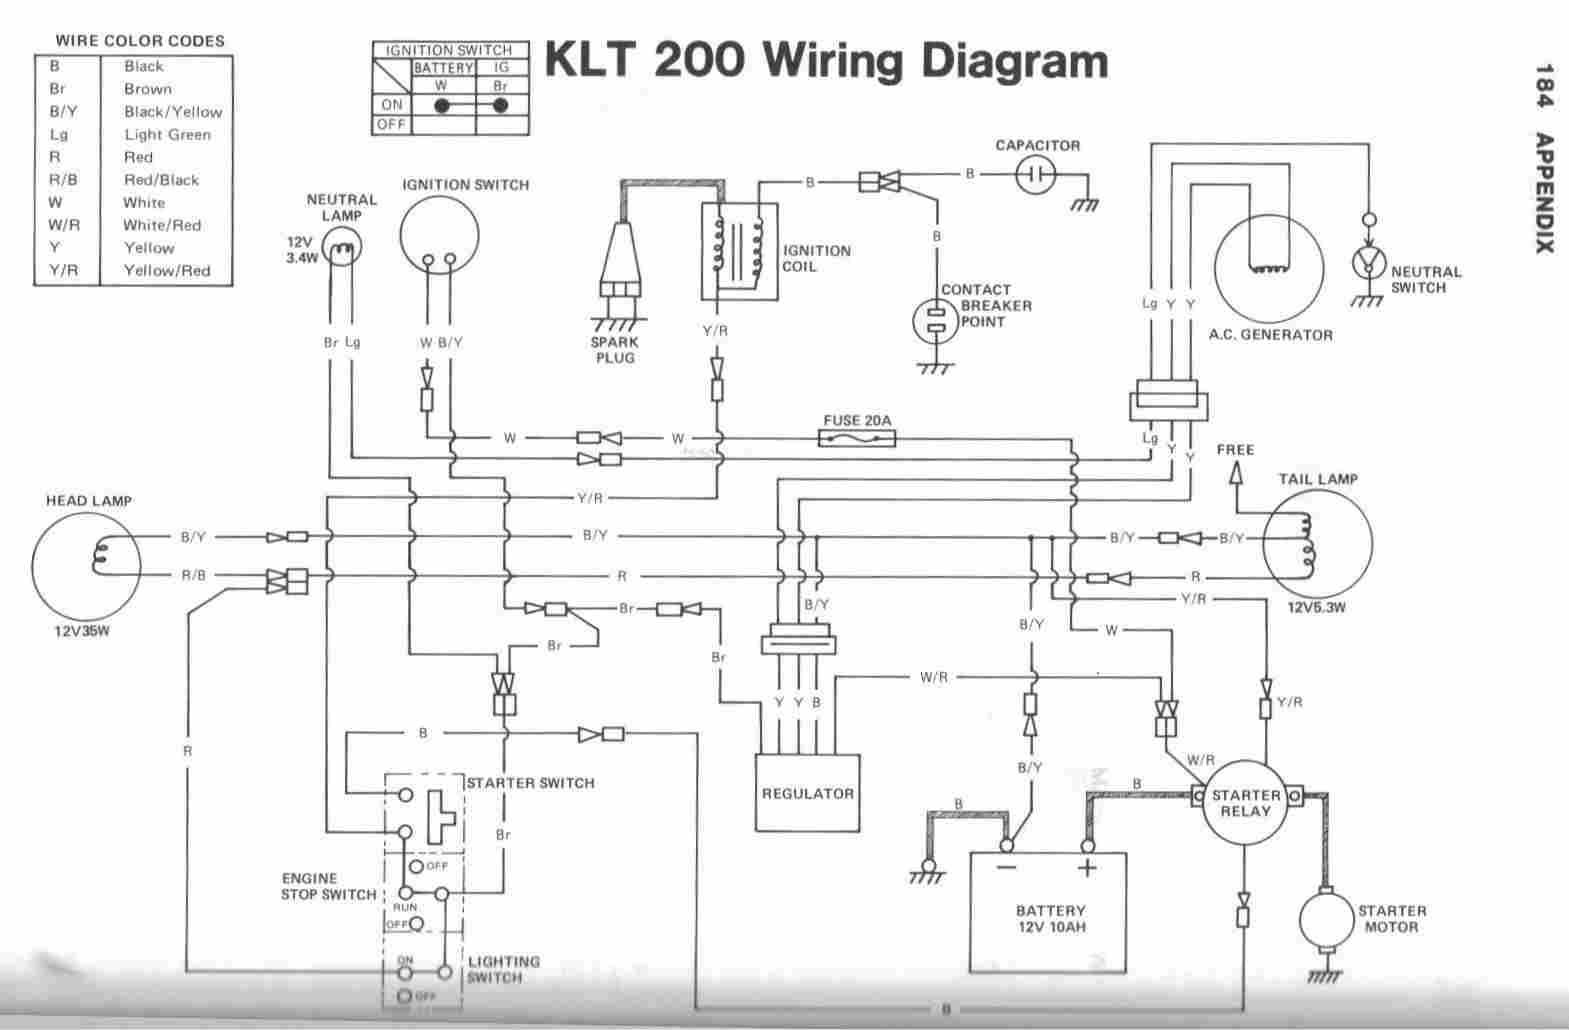 2869034594ce054a636782e5c44b61b4 residential electrical wiring diagrams pdf easy routing cool home electrical wiring diagrams at gsmportal.co